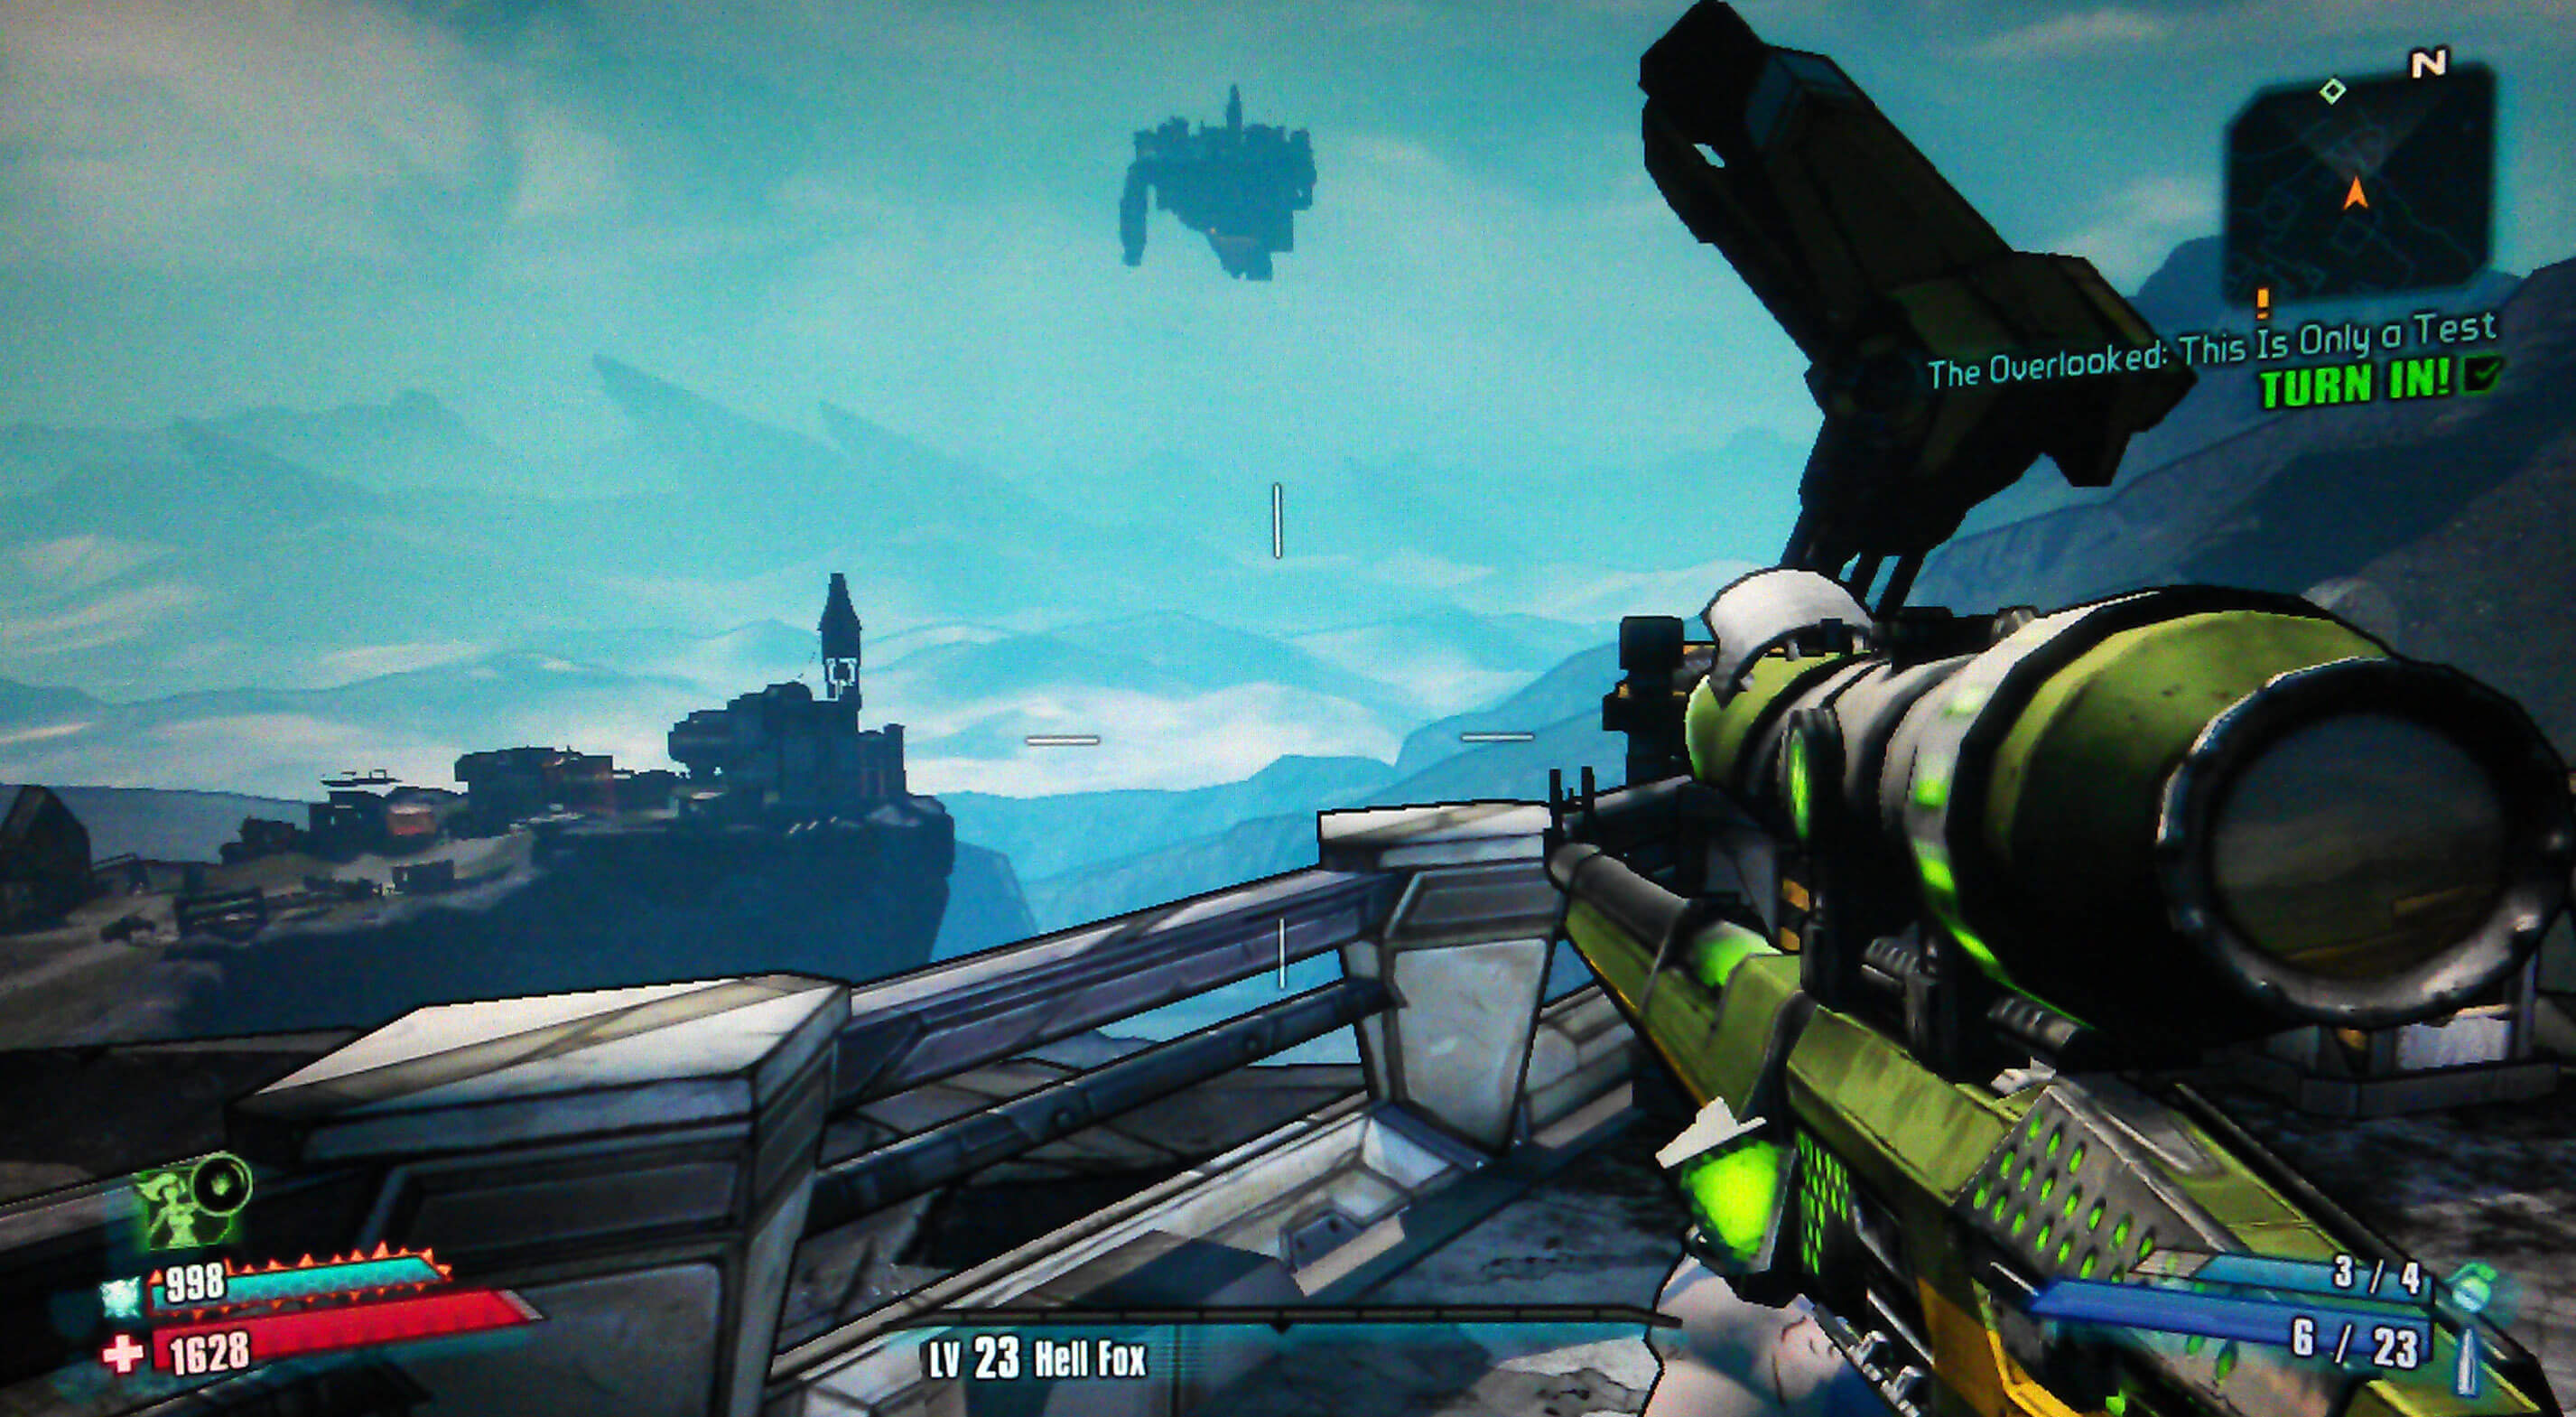 Borderlands 2 The Overlooked: This Is Only a Test Walkthrough